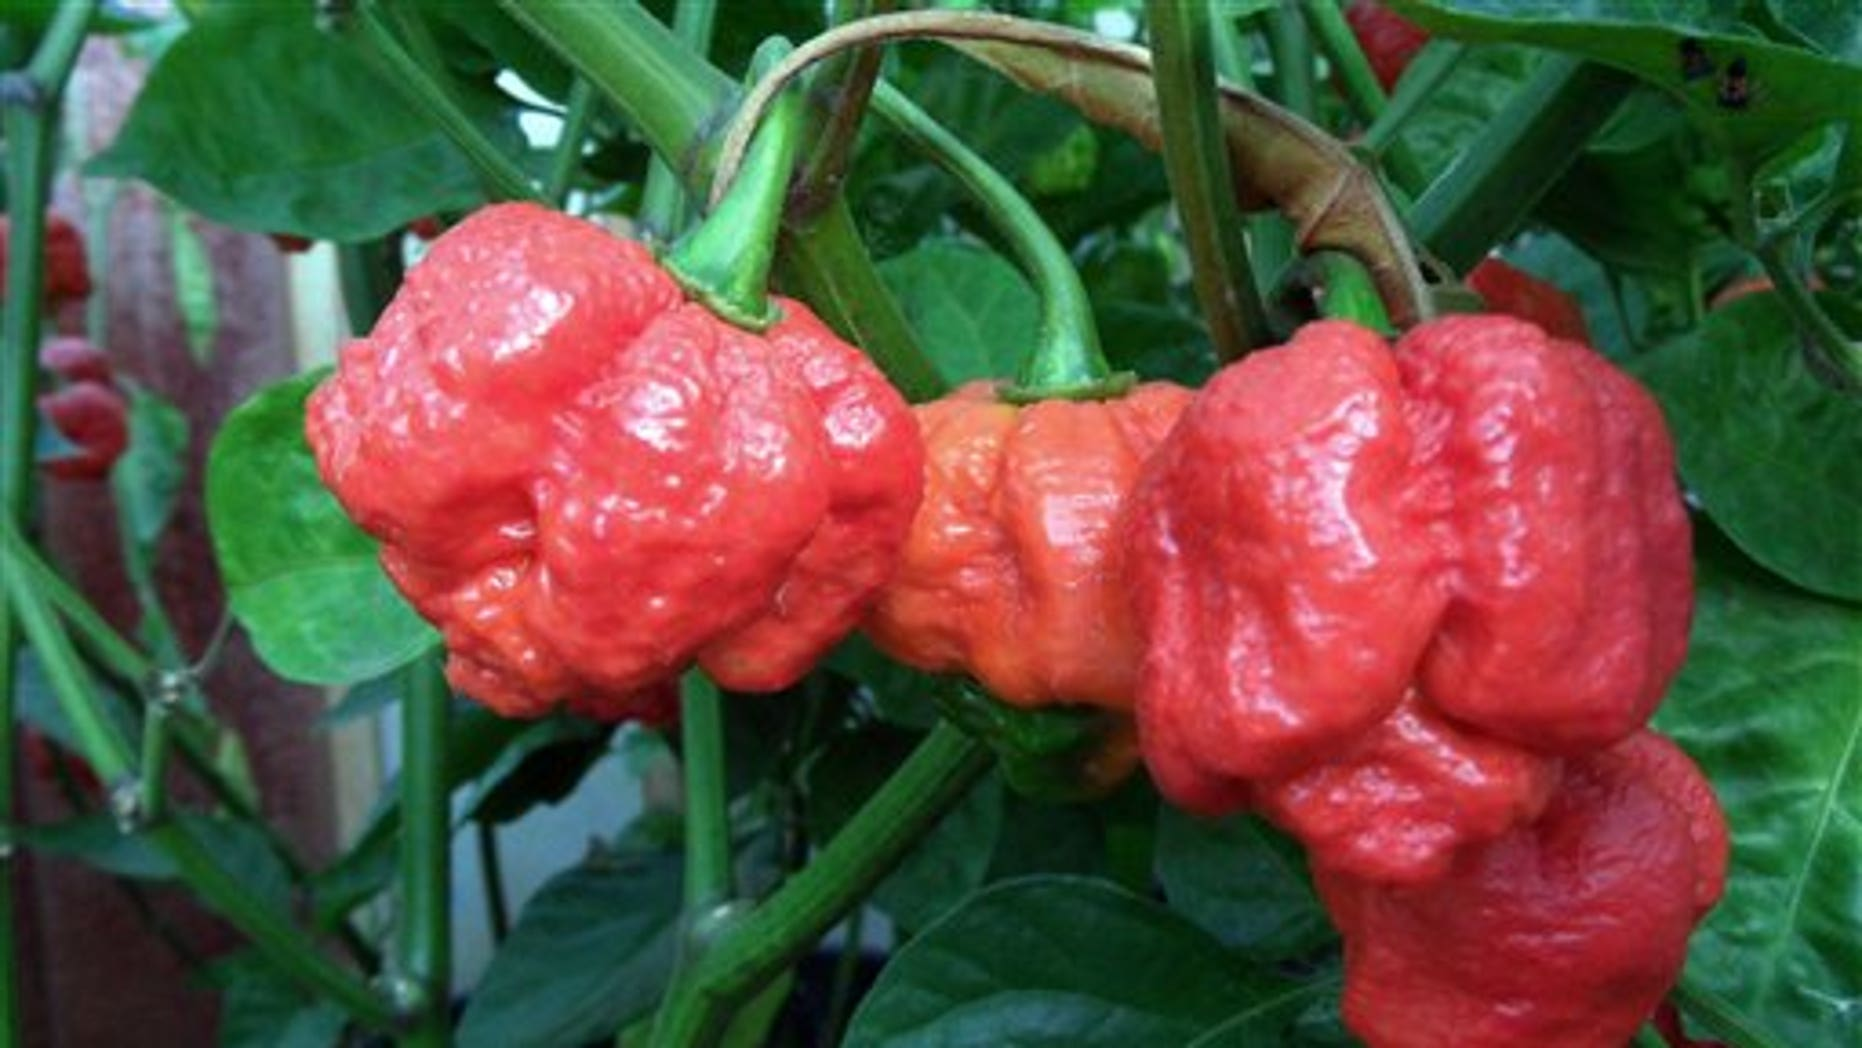 This undated image provided by New Mexico State University shows the Trinidad Moruga Scorpion, the new hottest pepper on the planet, as identified by NMSU's Chile Pepper Institute.